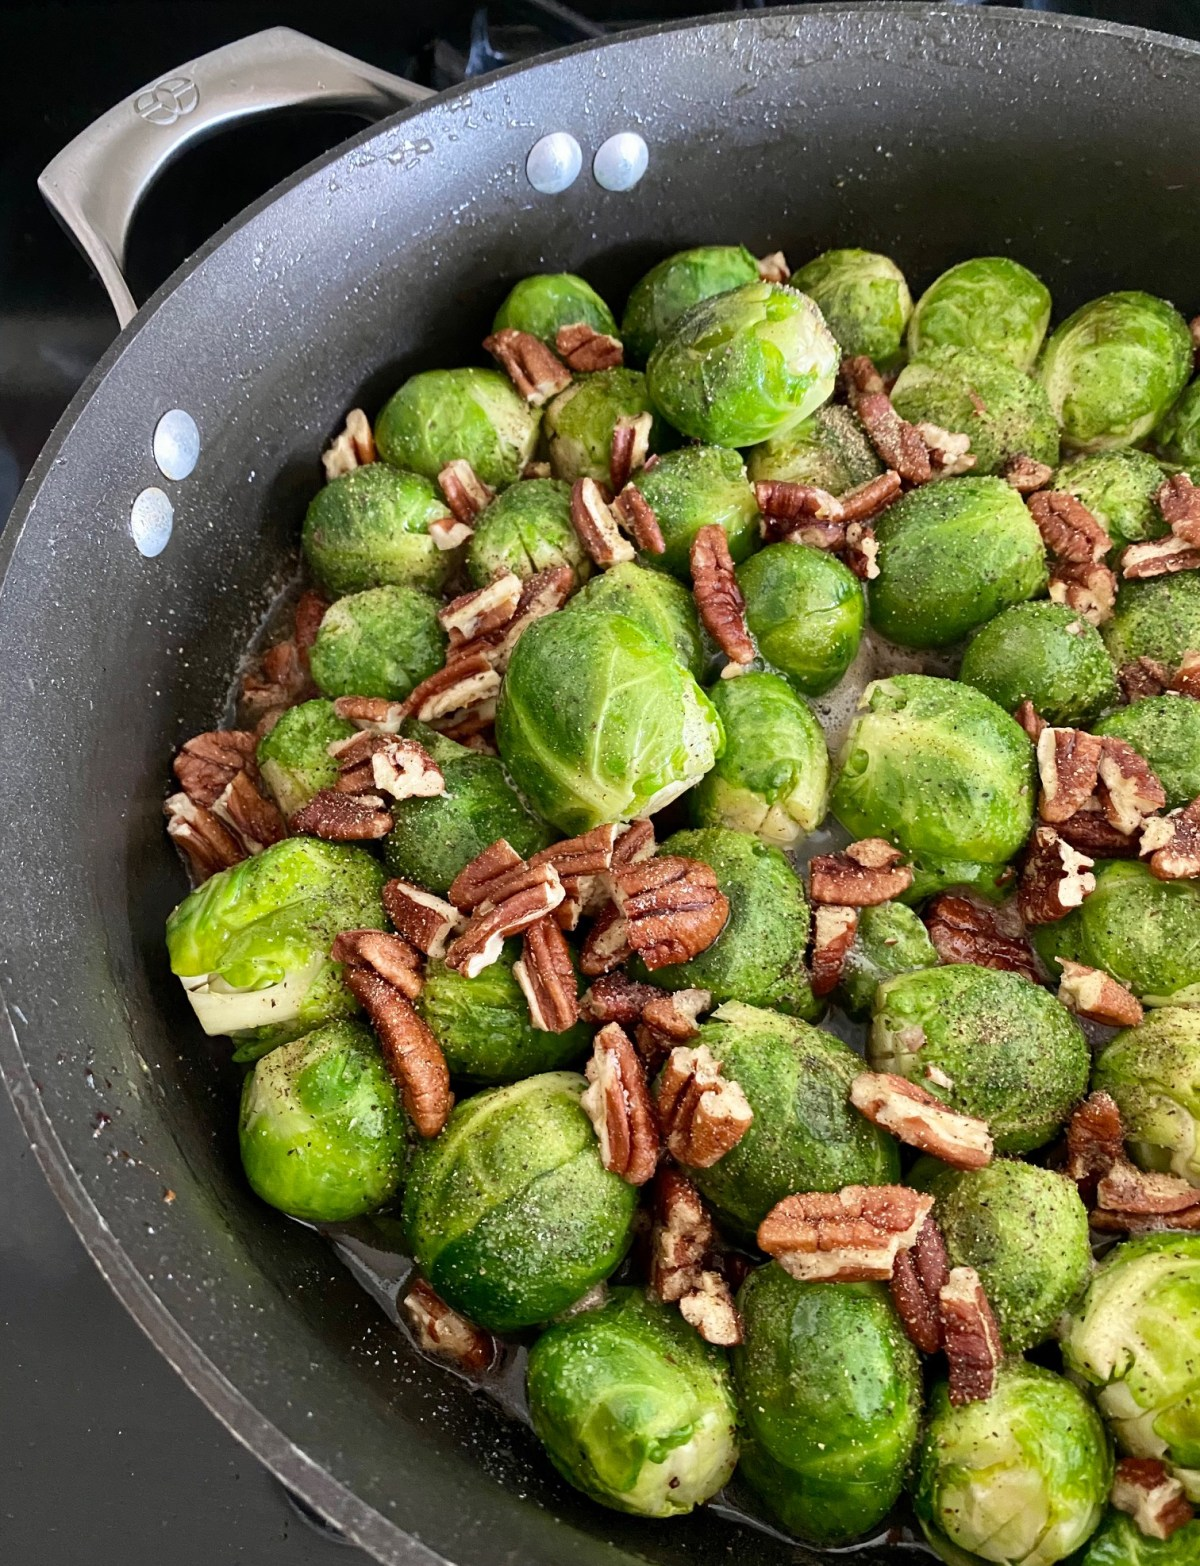 Chicken broth, pecans, maple syrup, salt and pepper are added to the Brussels sprouts skillet. #maplebaconbrusselssprouts #baconbrusselssprouts #maplebrusselssprouts #howtocookbrusselssprouts #cleaneating #dinnerrecipes